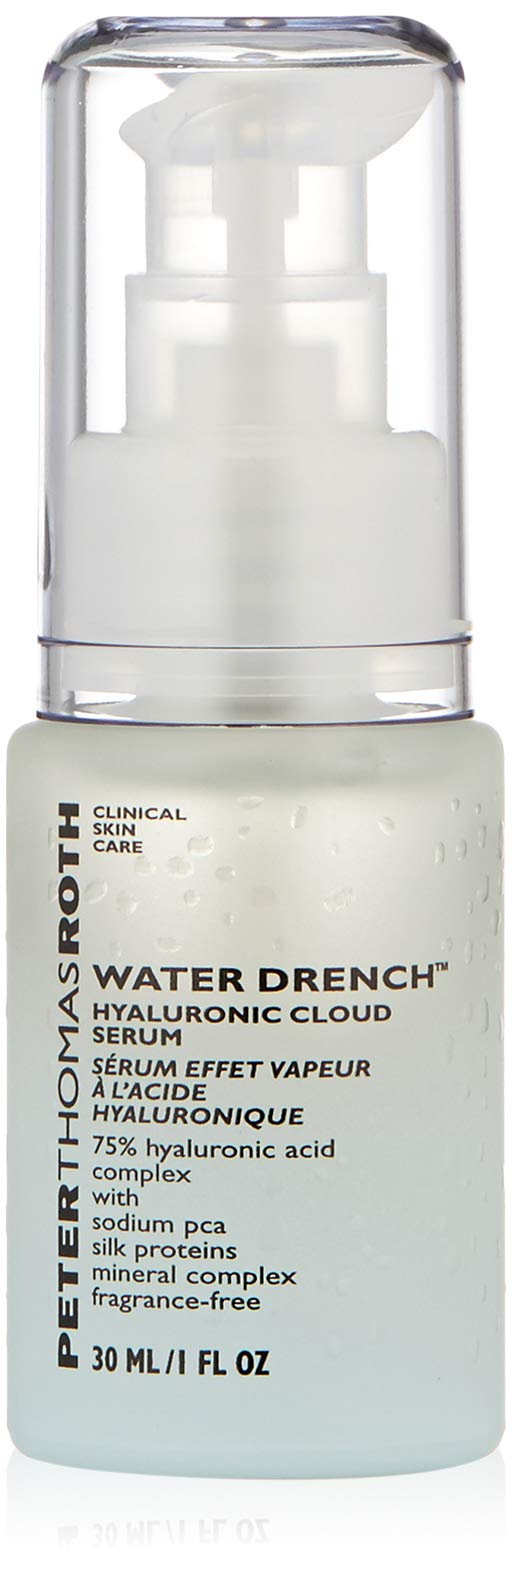 Peter Thomas Roth Water Drench Hyaluronic Cloud Serum, 1 fl. oz.